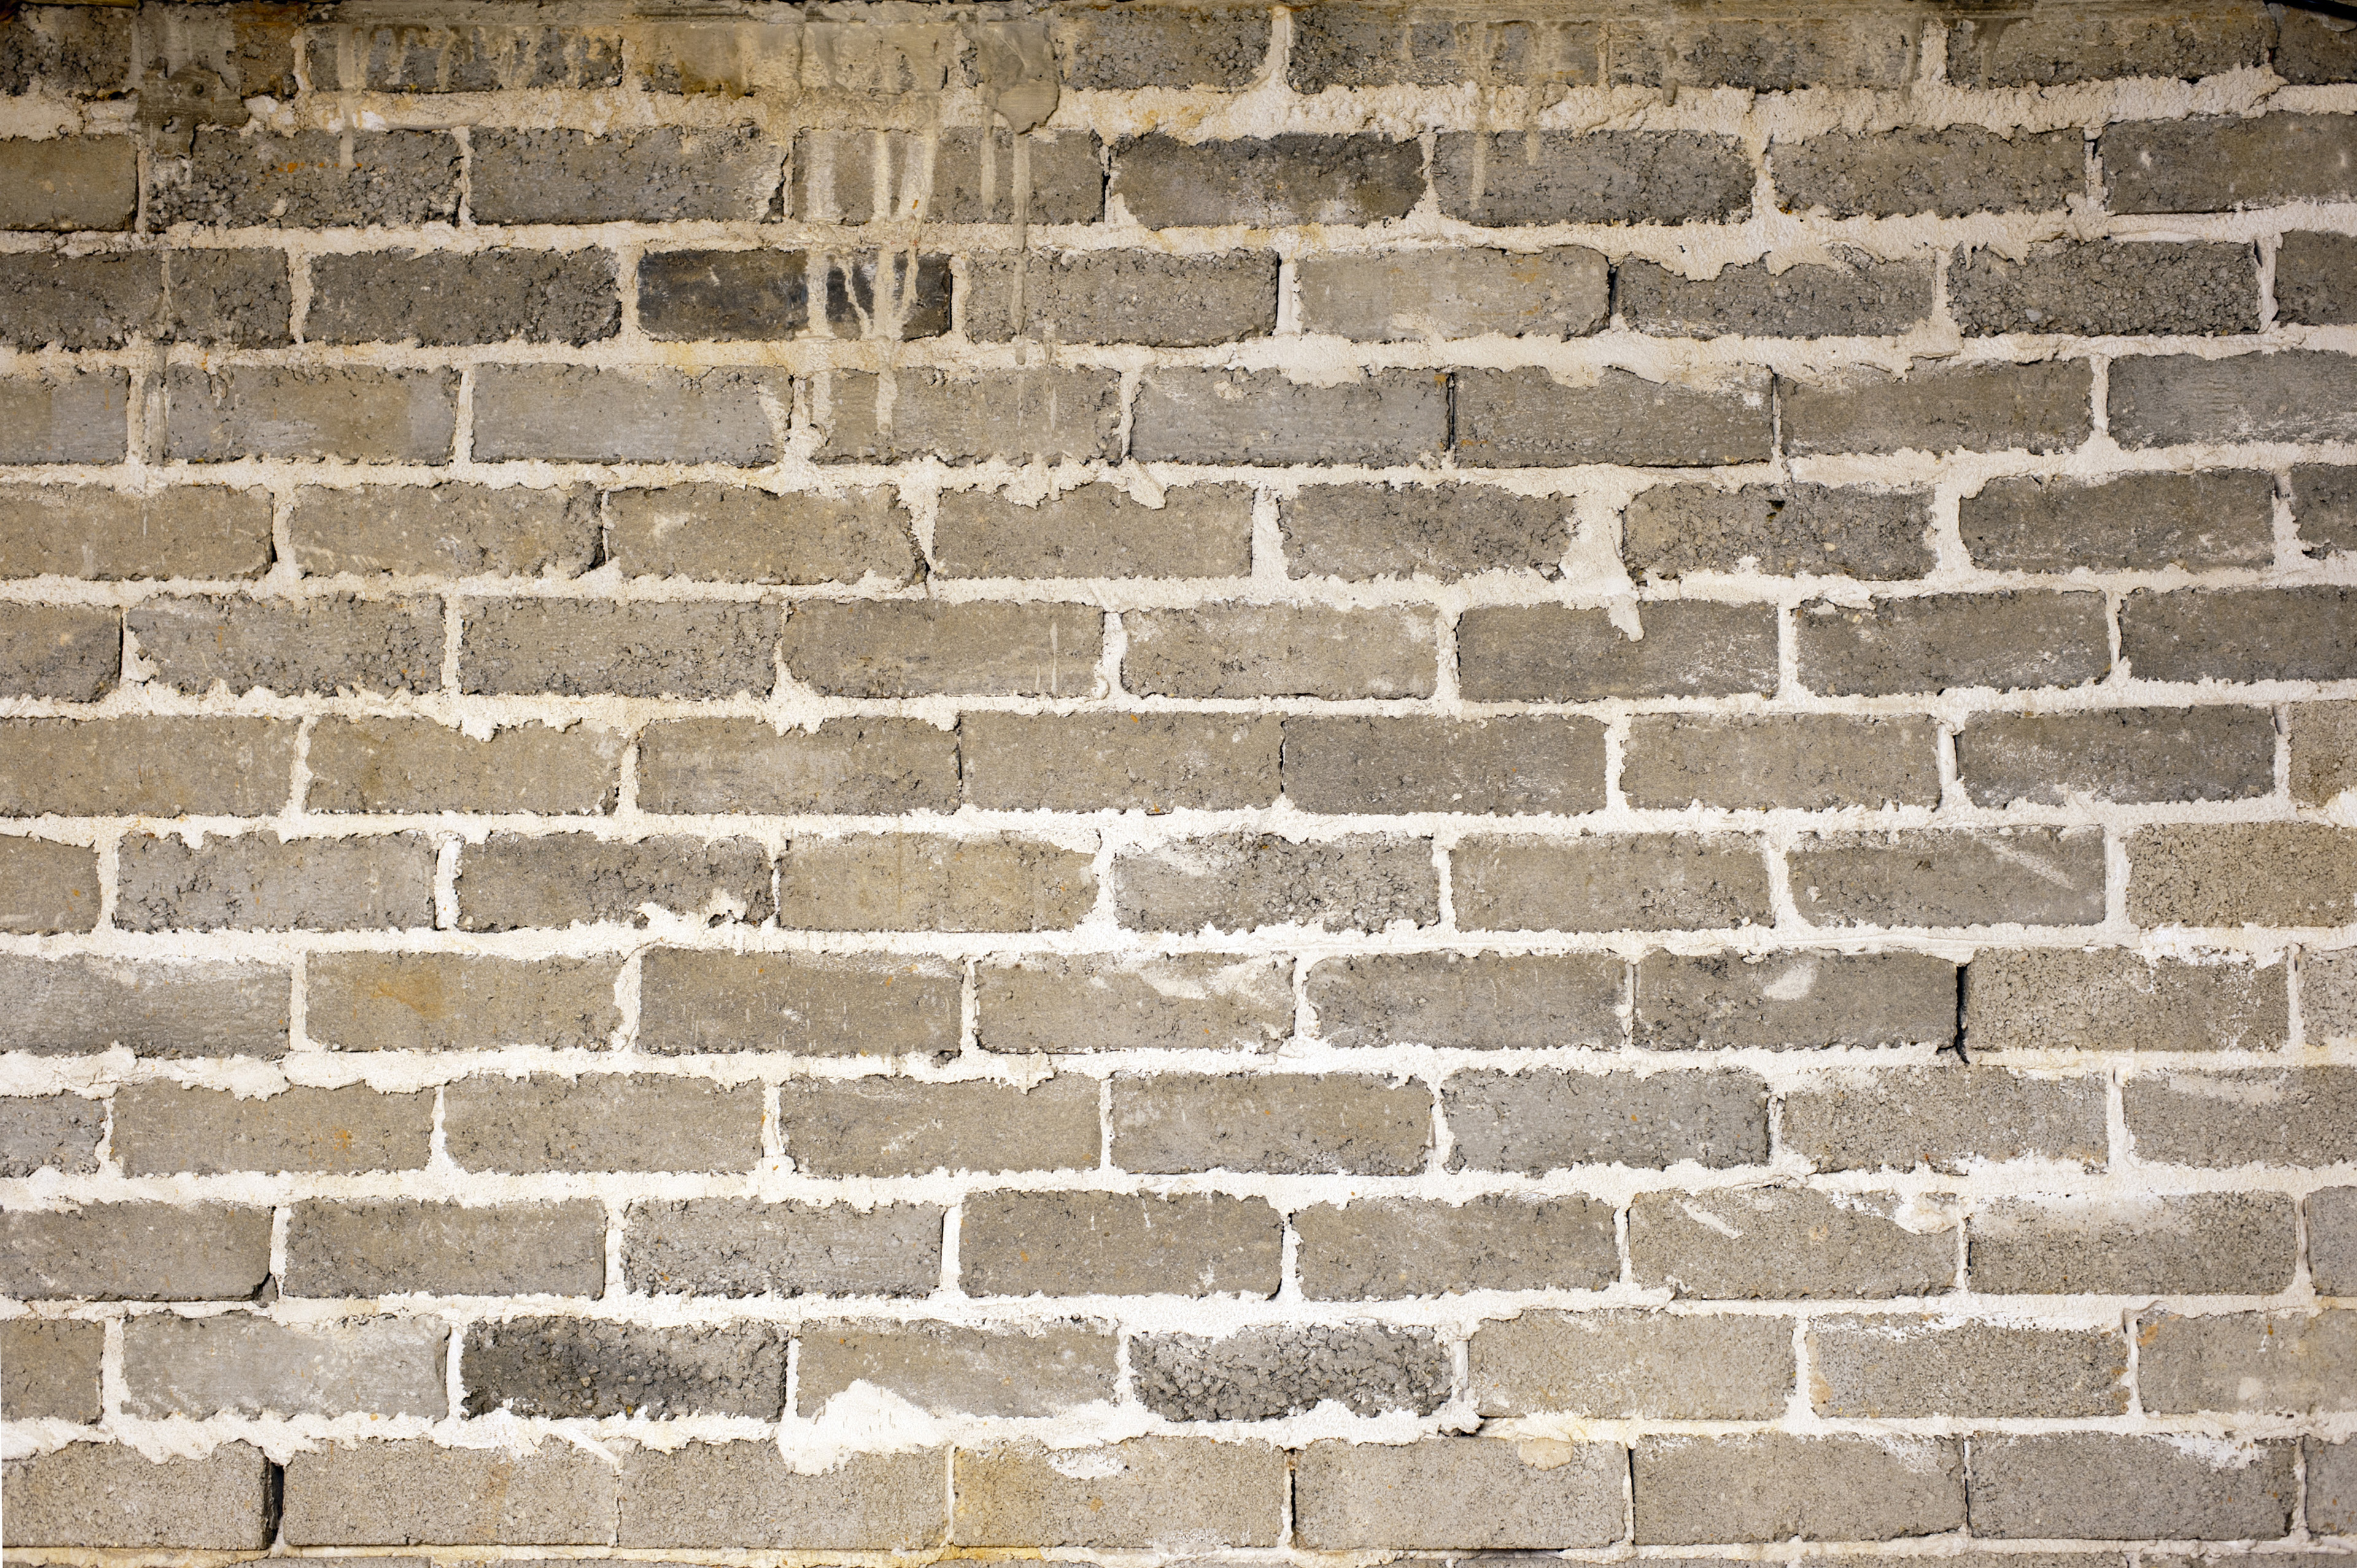 Image of old brick wall background texture freebie for Exterior background